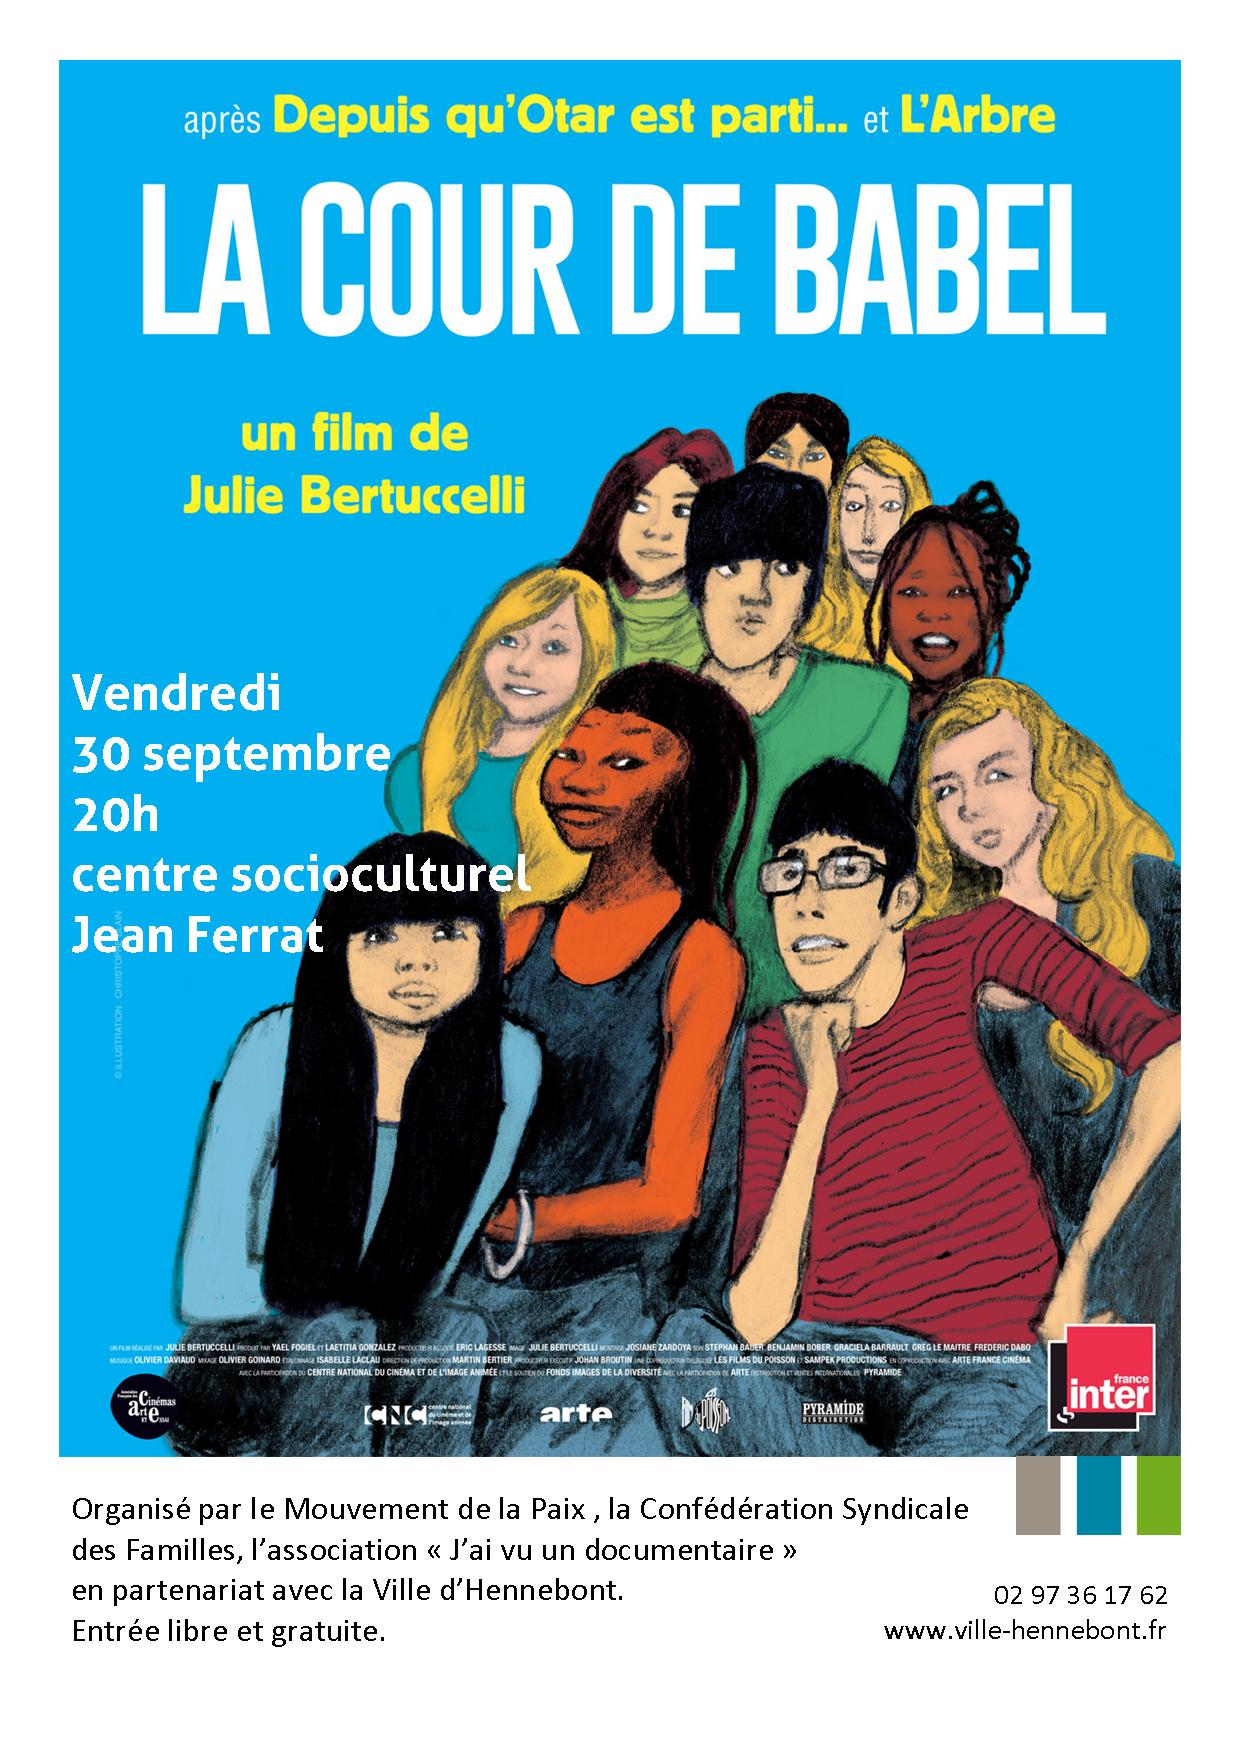 flyer-la-cour-de-babel